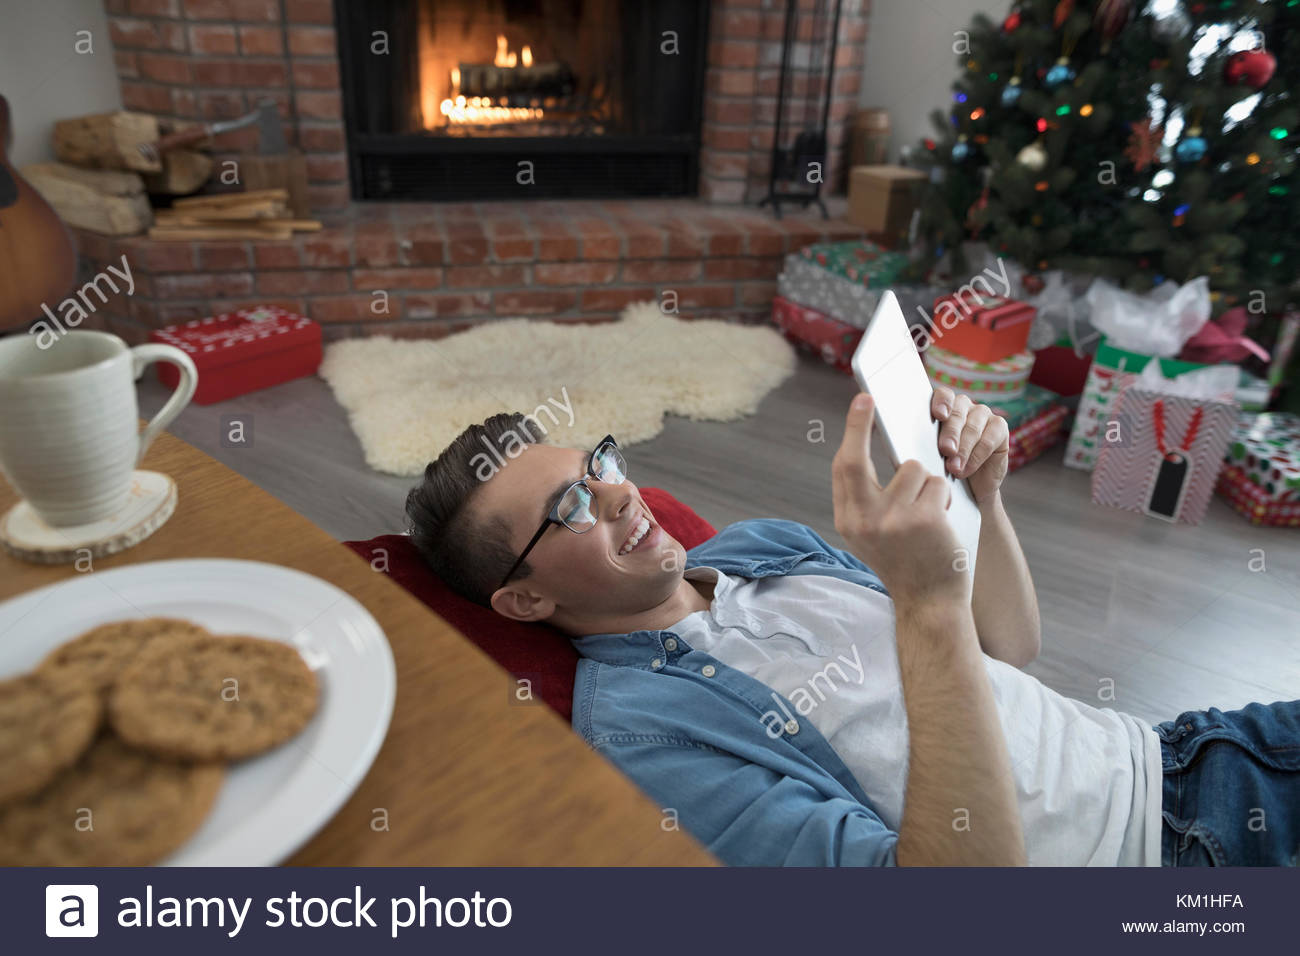 Person Relaxing Fireplace Watching Stock Photos & Person